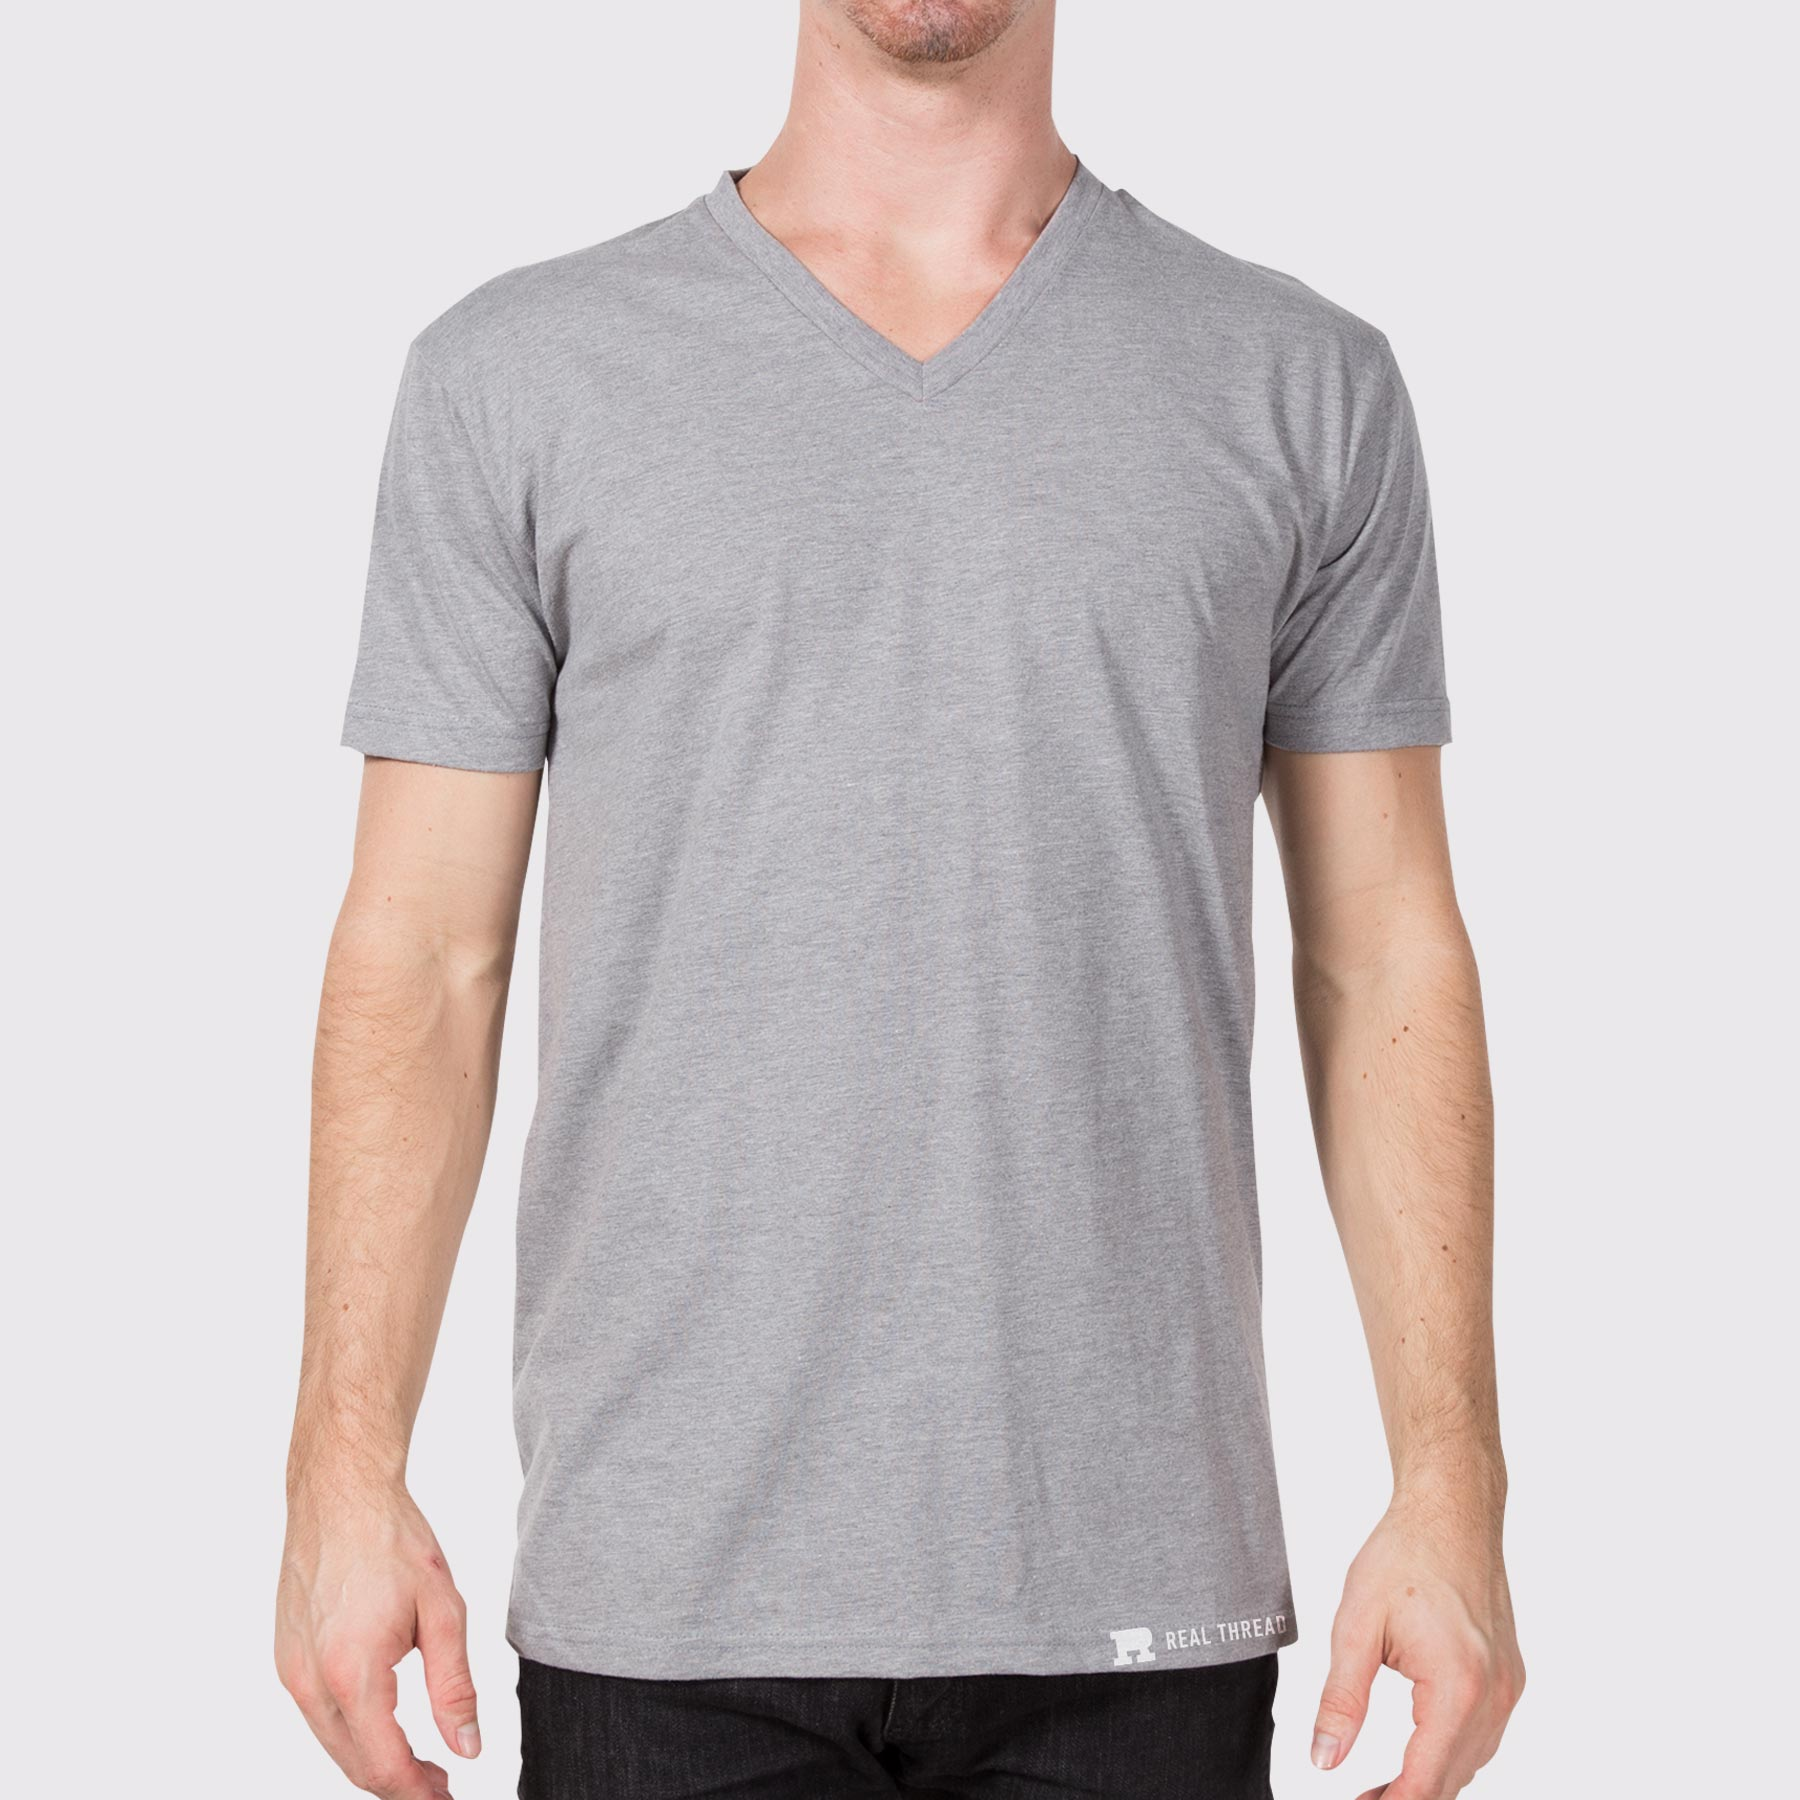 Next Level Apparel 6240 V-Neck Modeled